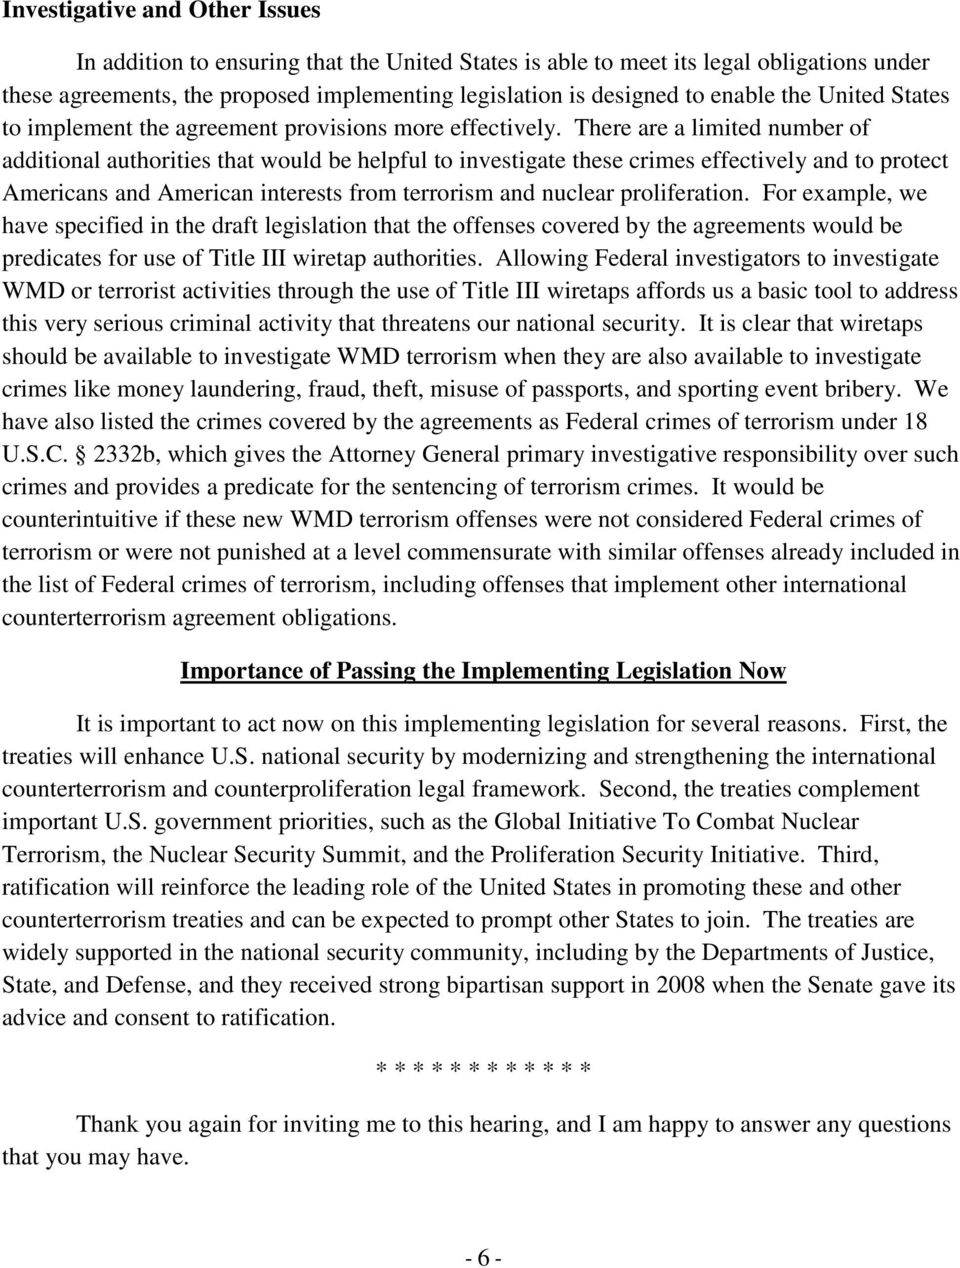 There are a limited number of additional authorities that would be helpful to investigate these crimes effectively and to protect Americans and American interests from terrorism and nuclear